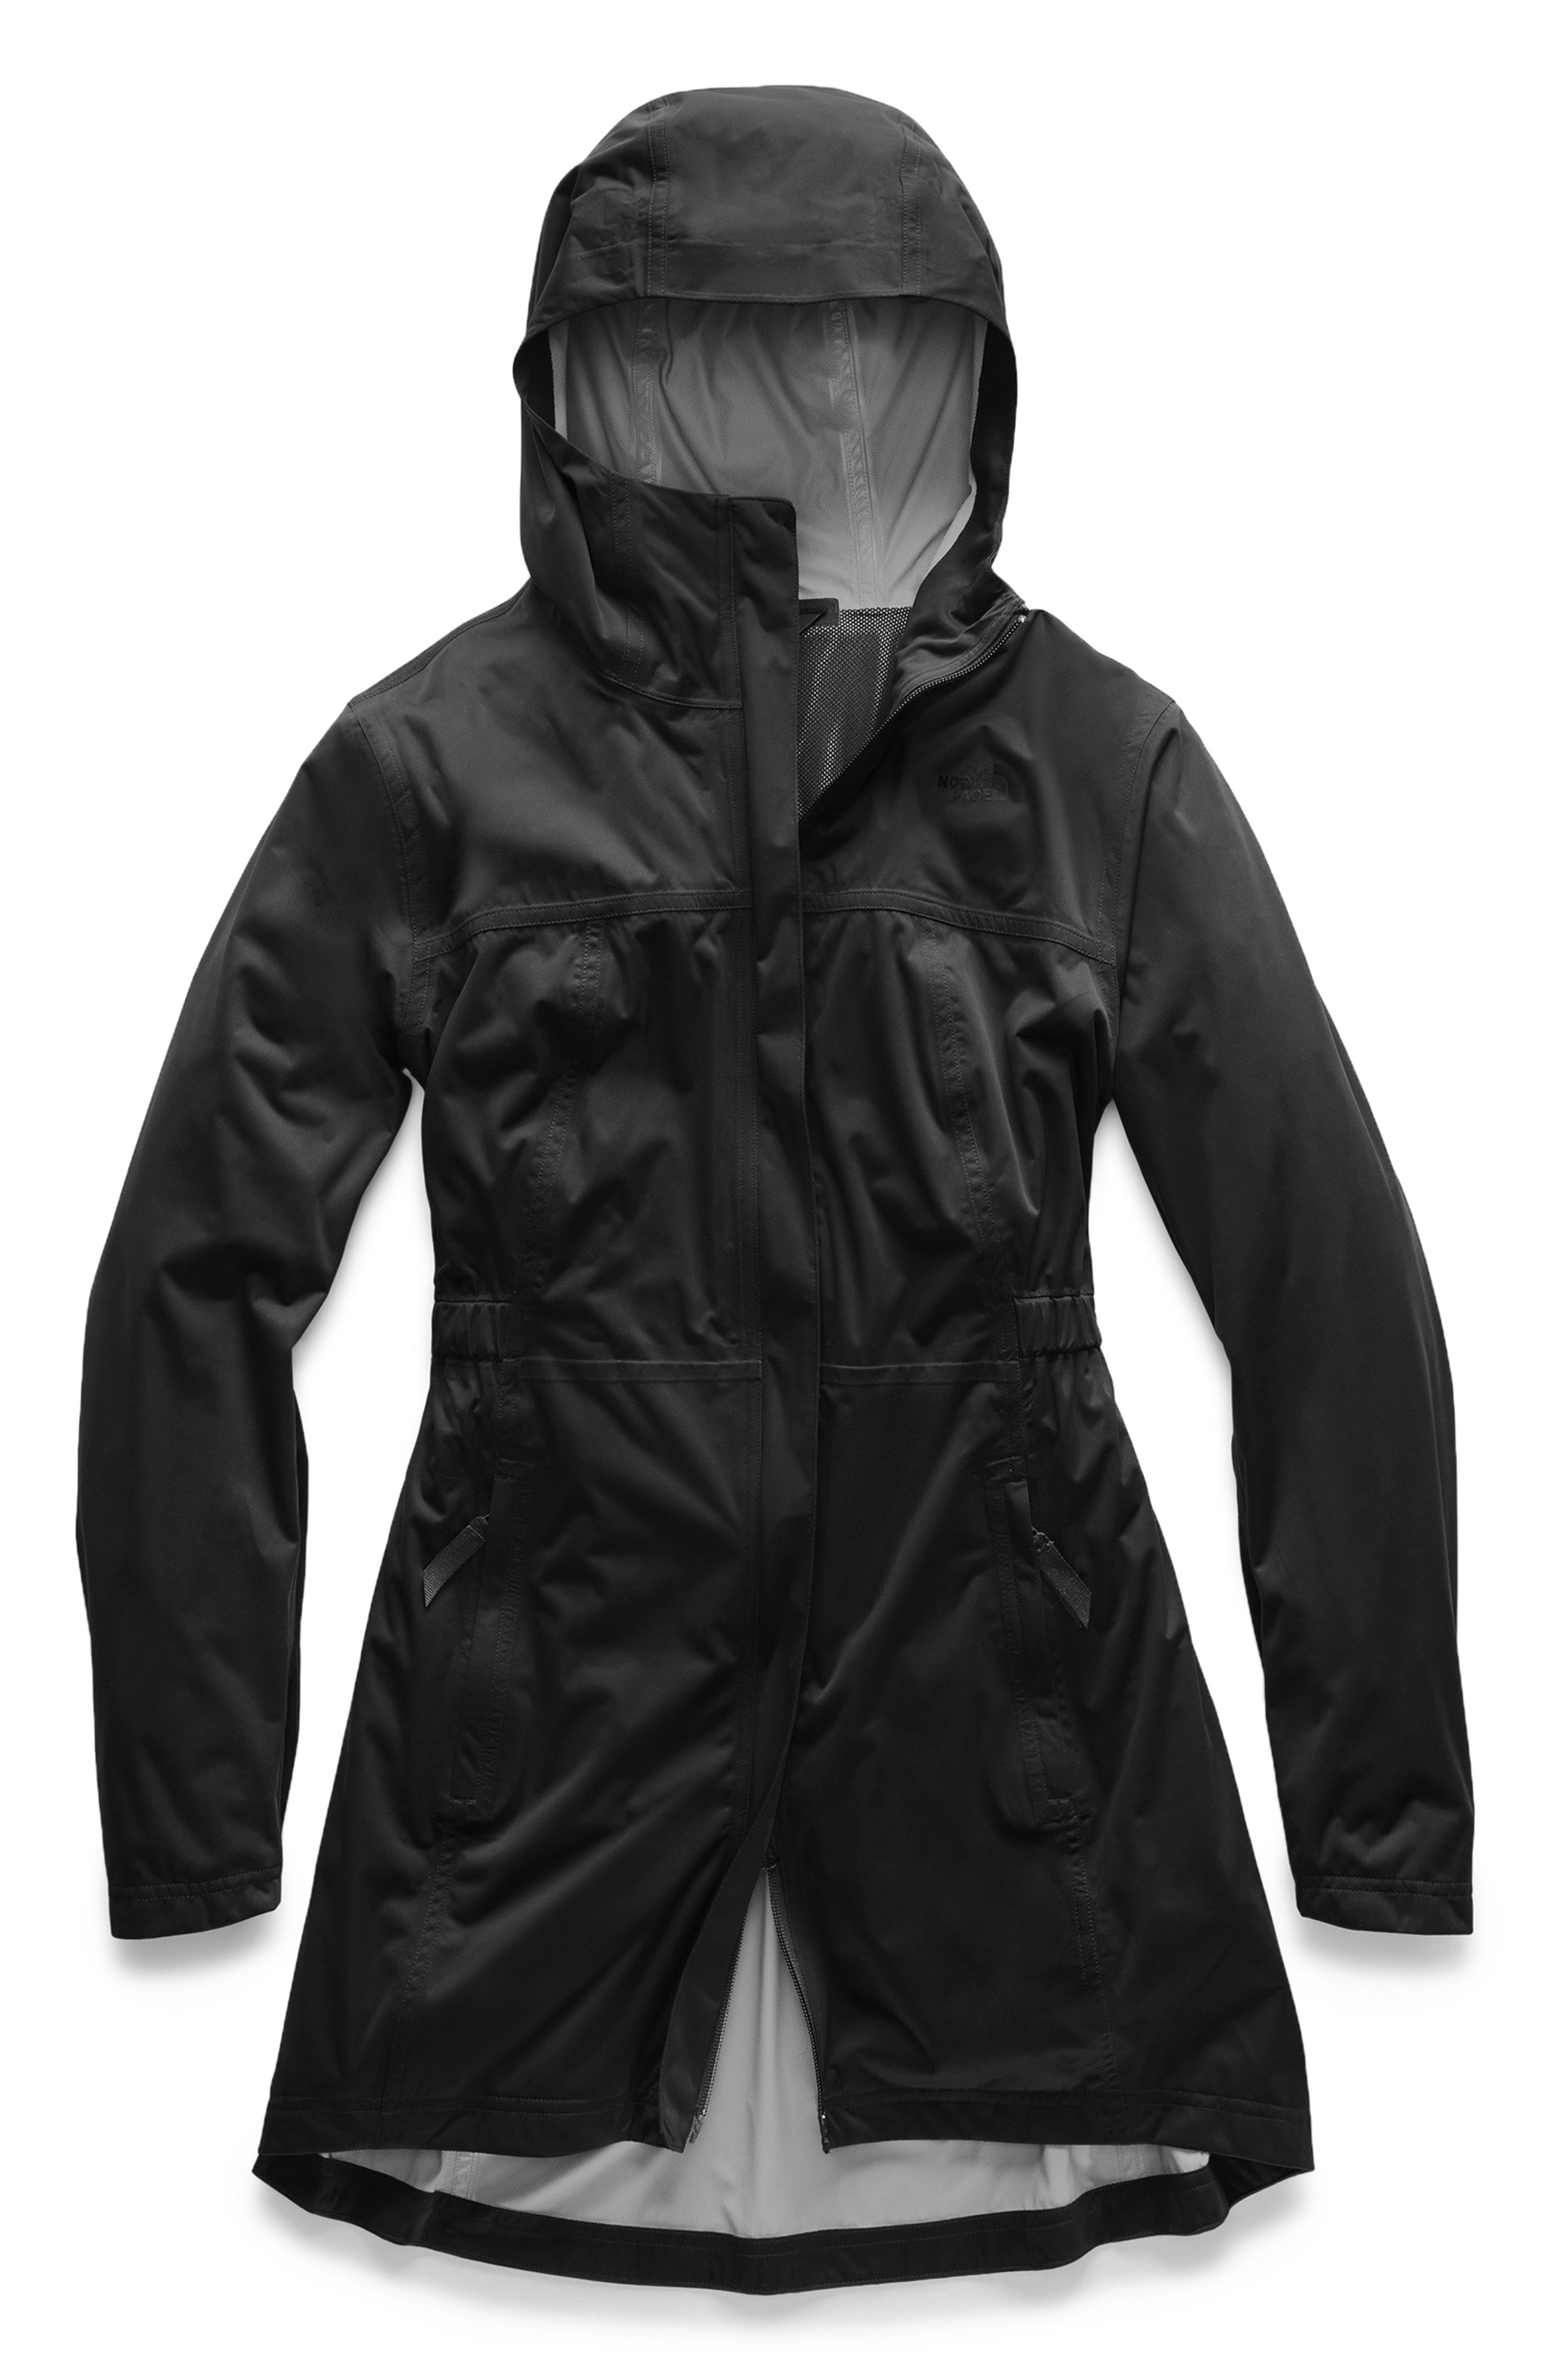 Jackets that protects you from winter: waterproof coat